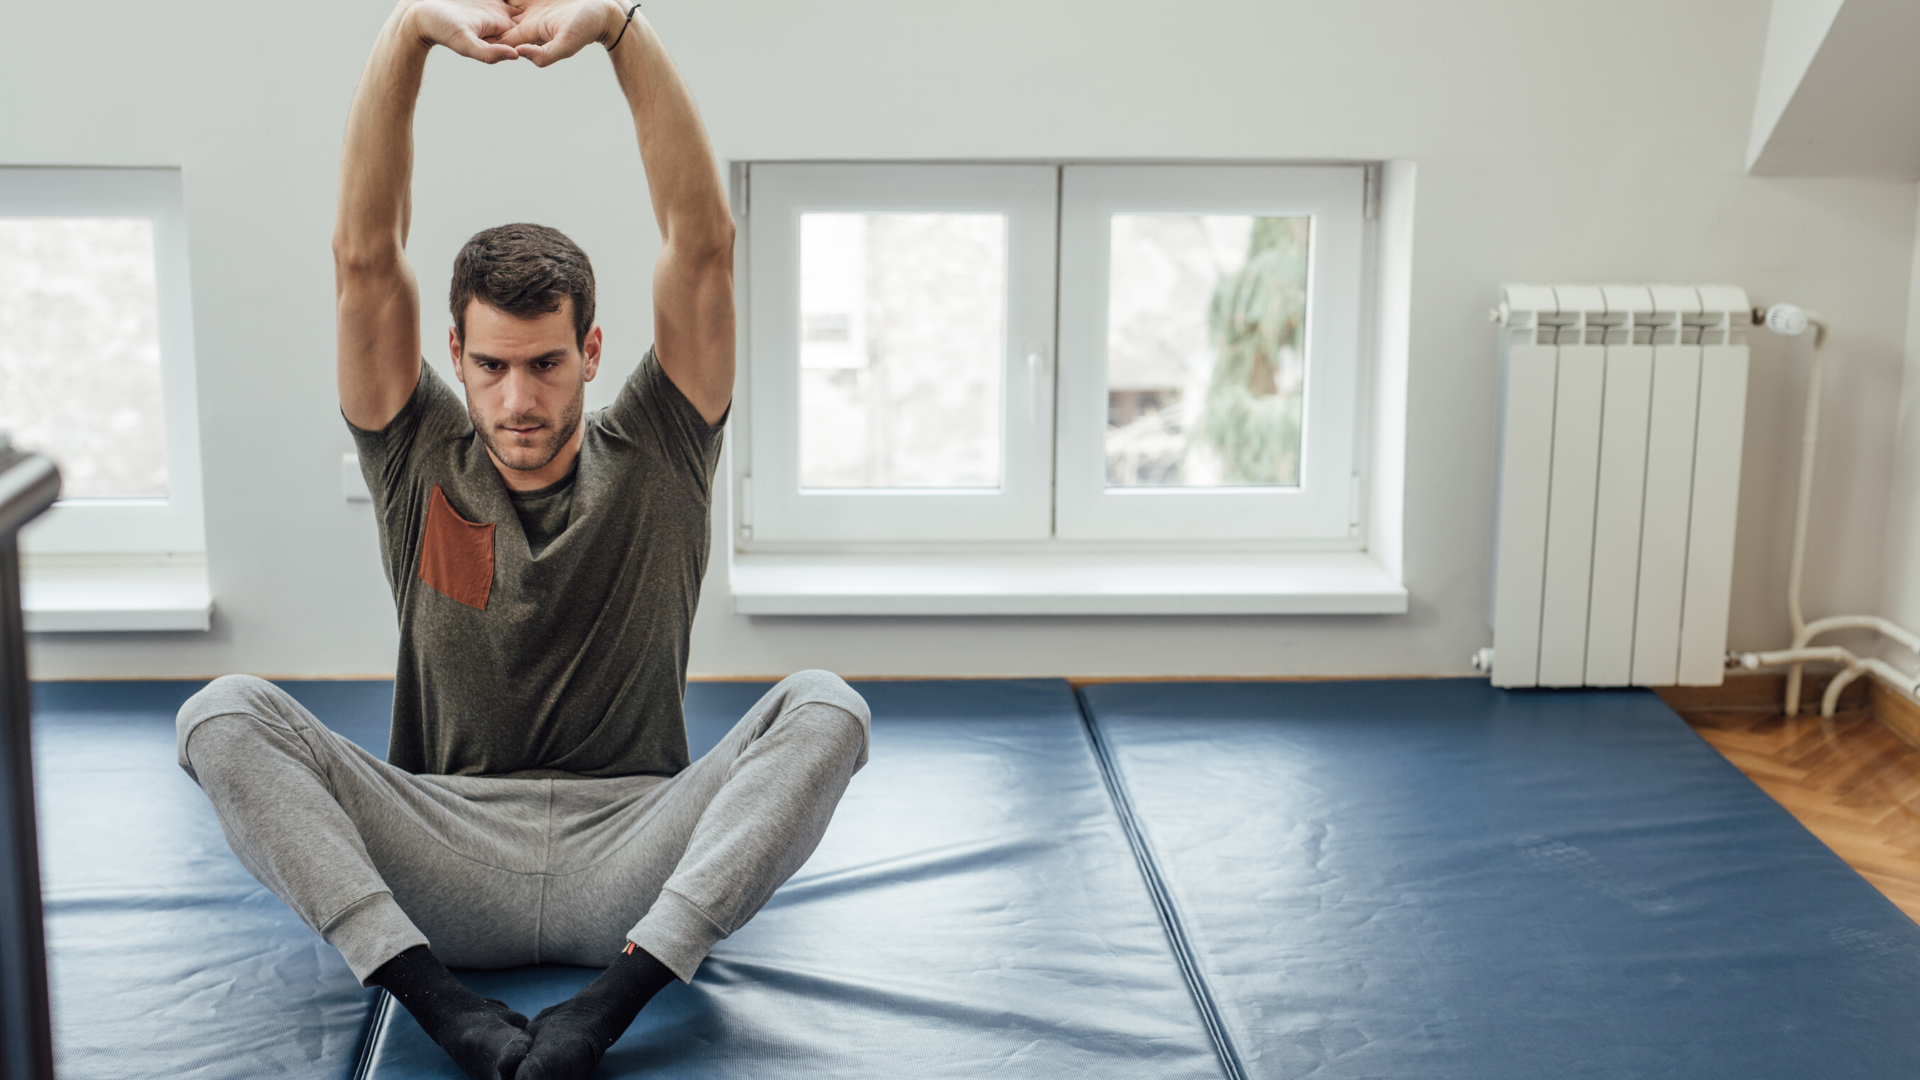 Male yoga student practicing yoga stretches at home